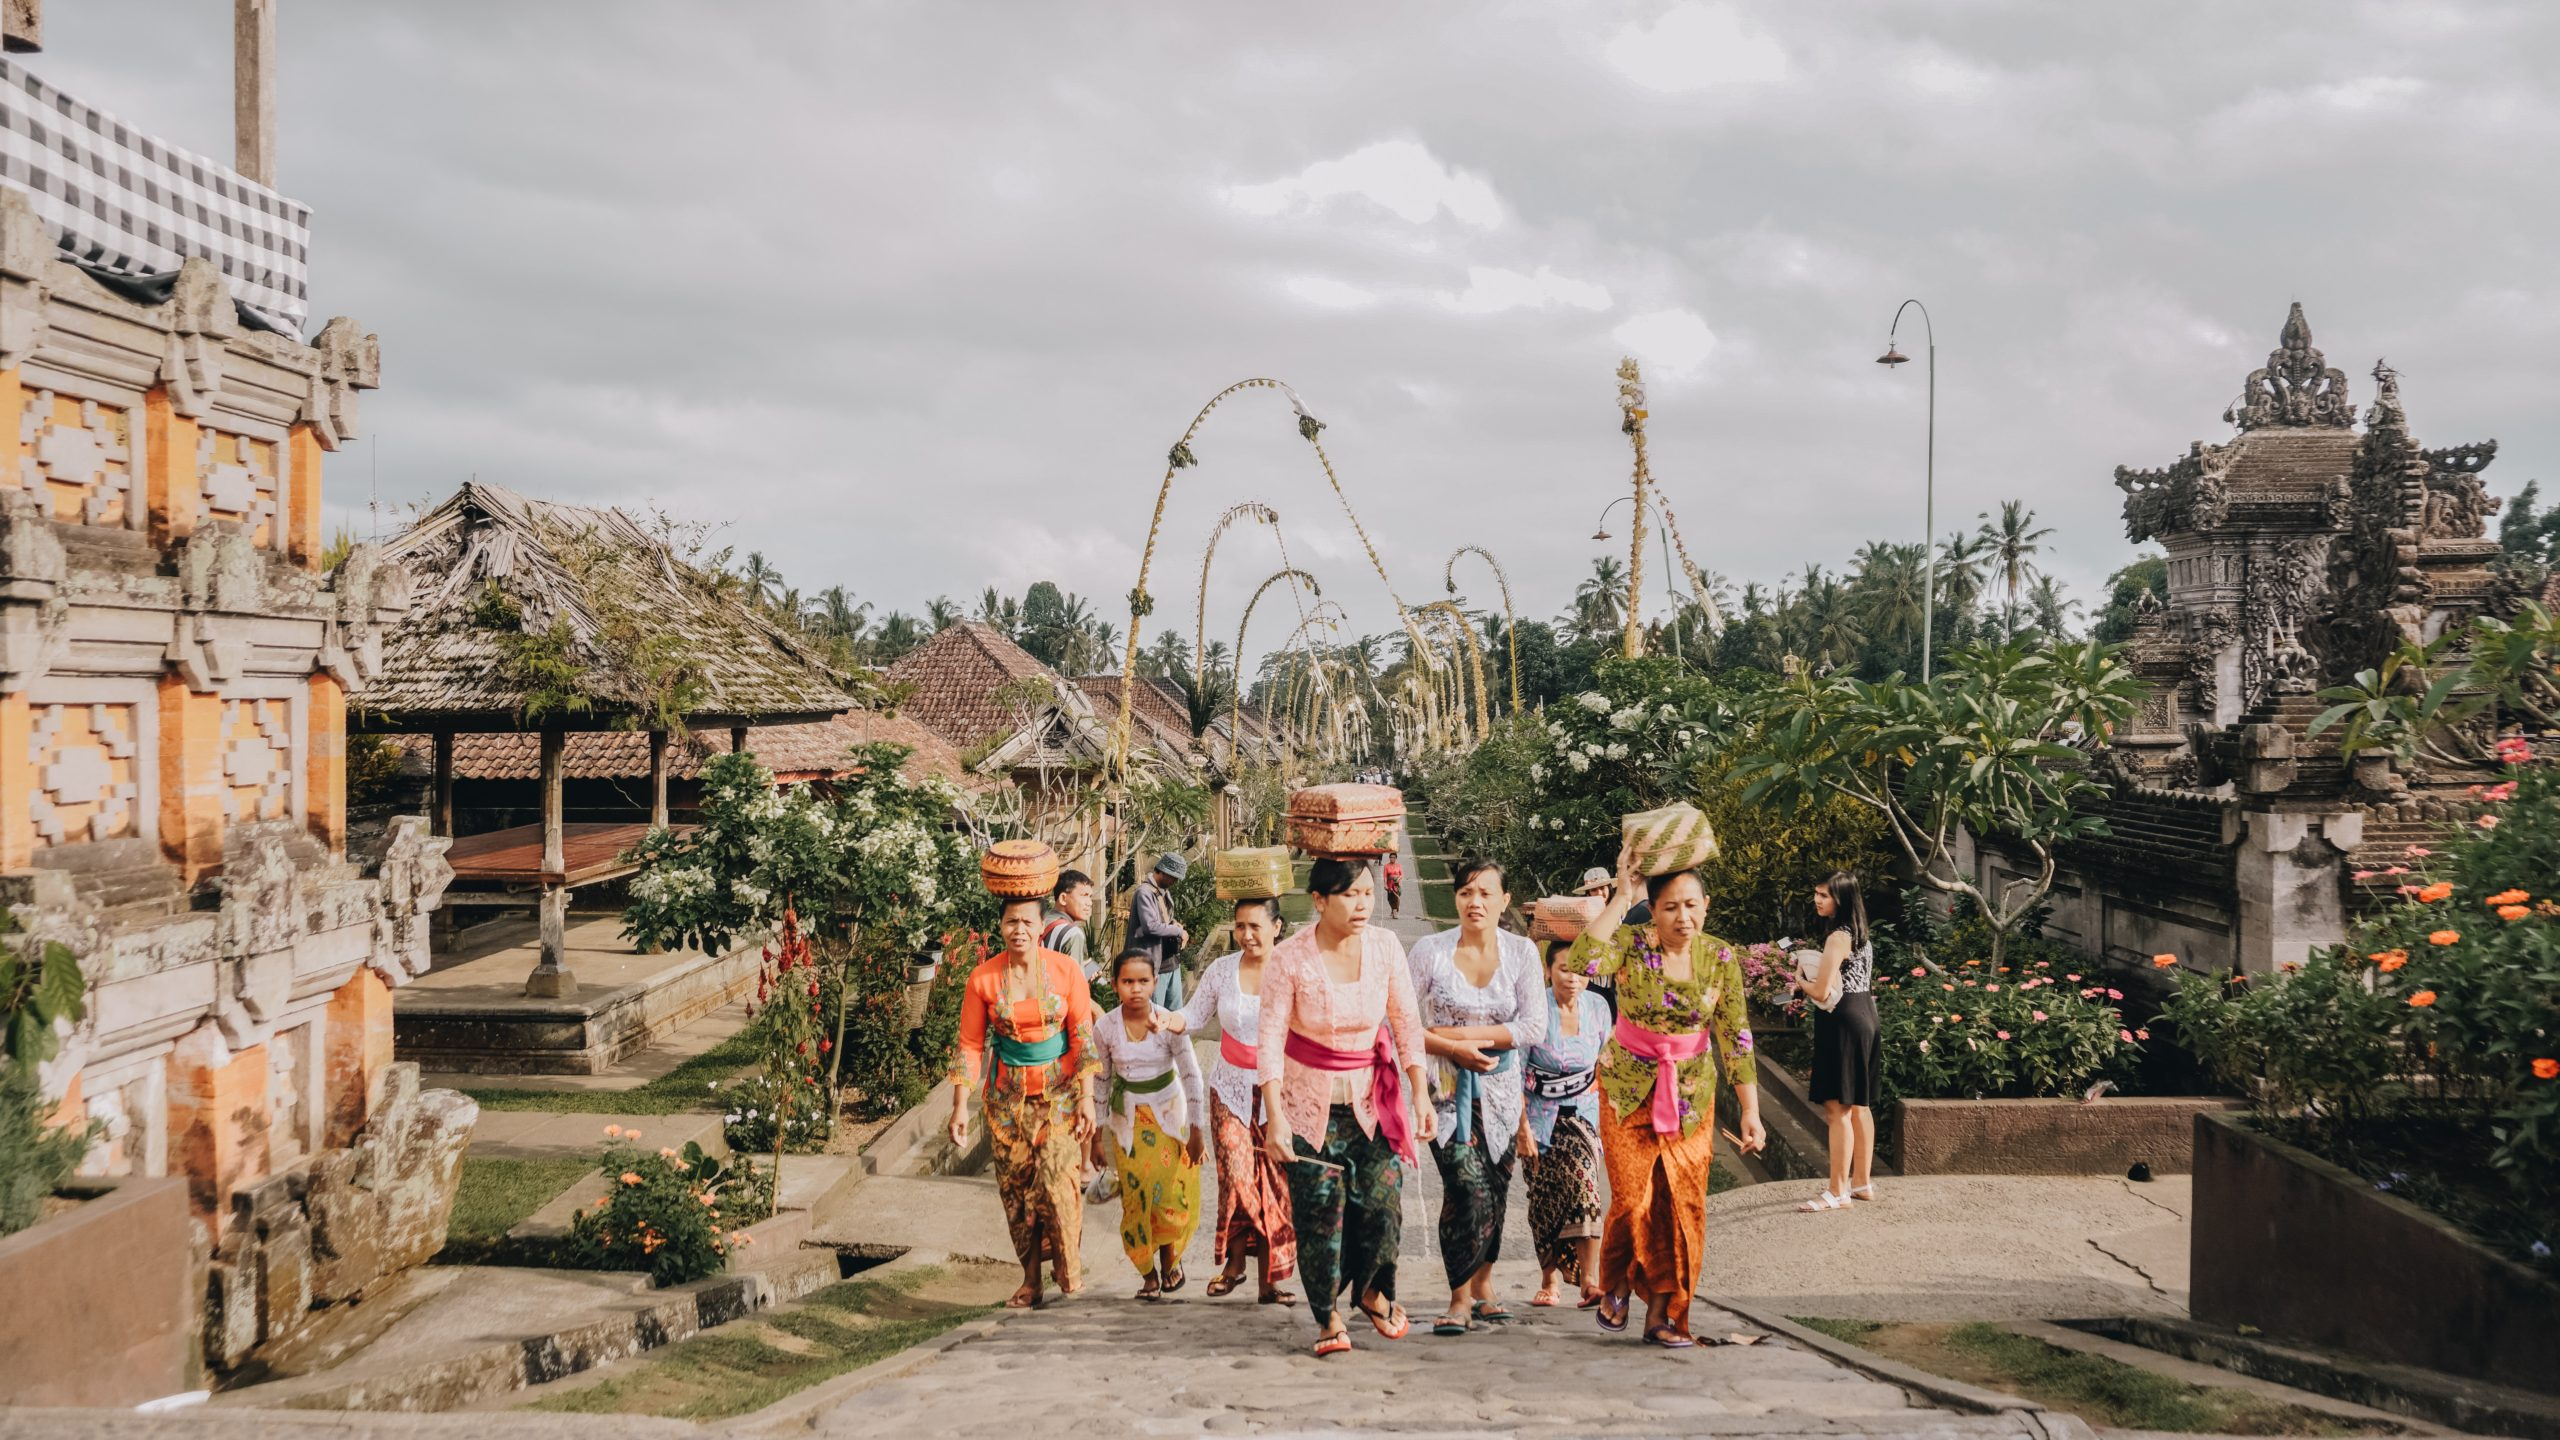 Bali is planning to reopen for tourists in October 2020